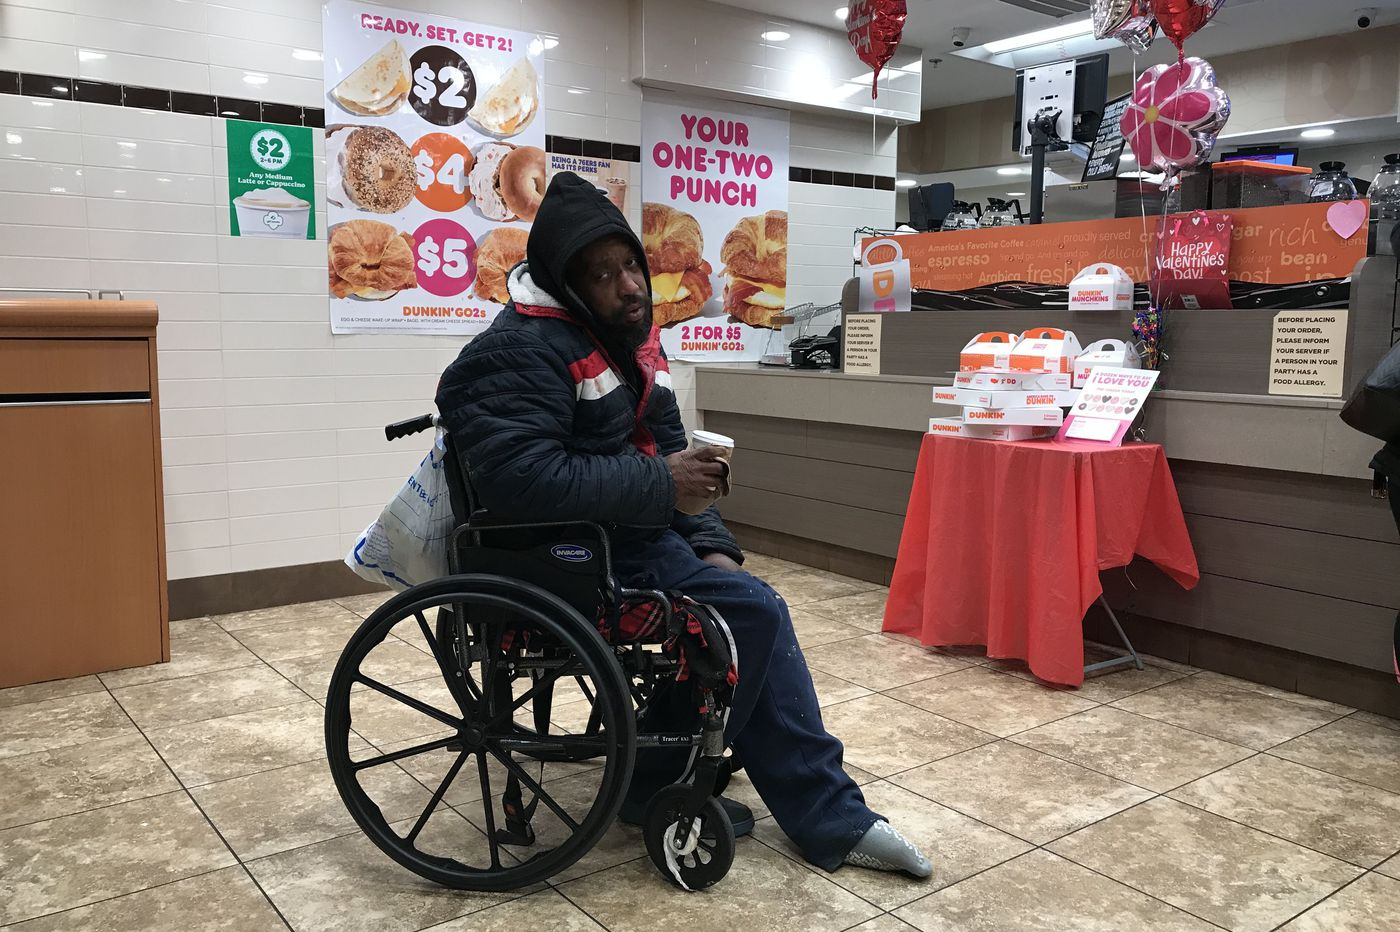 Police interaction with man in wheelchair again raises concerns about handling of homeless at Suburban Station